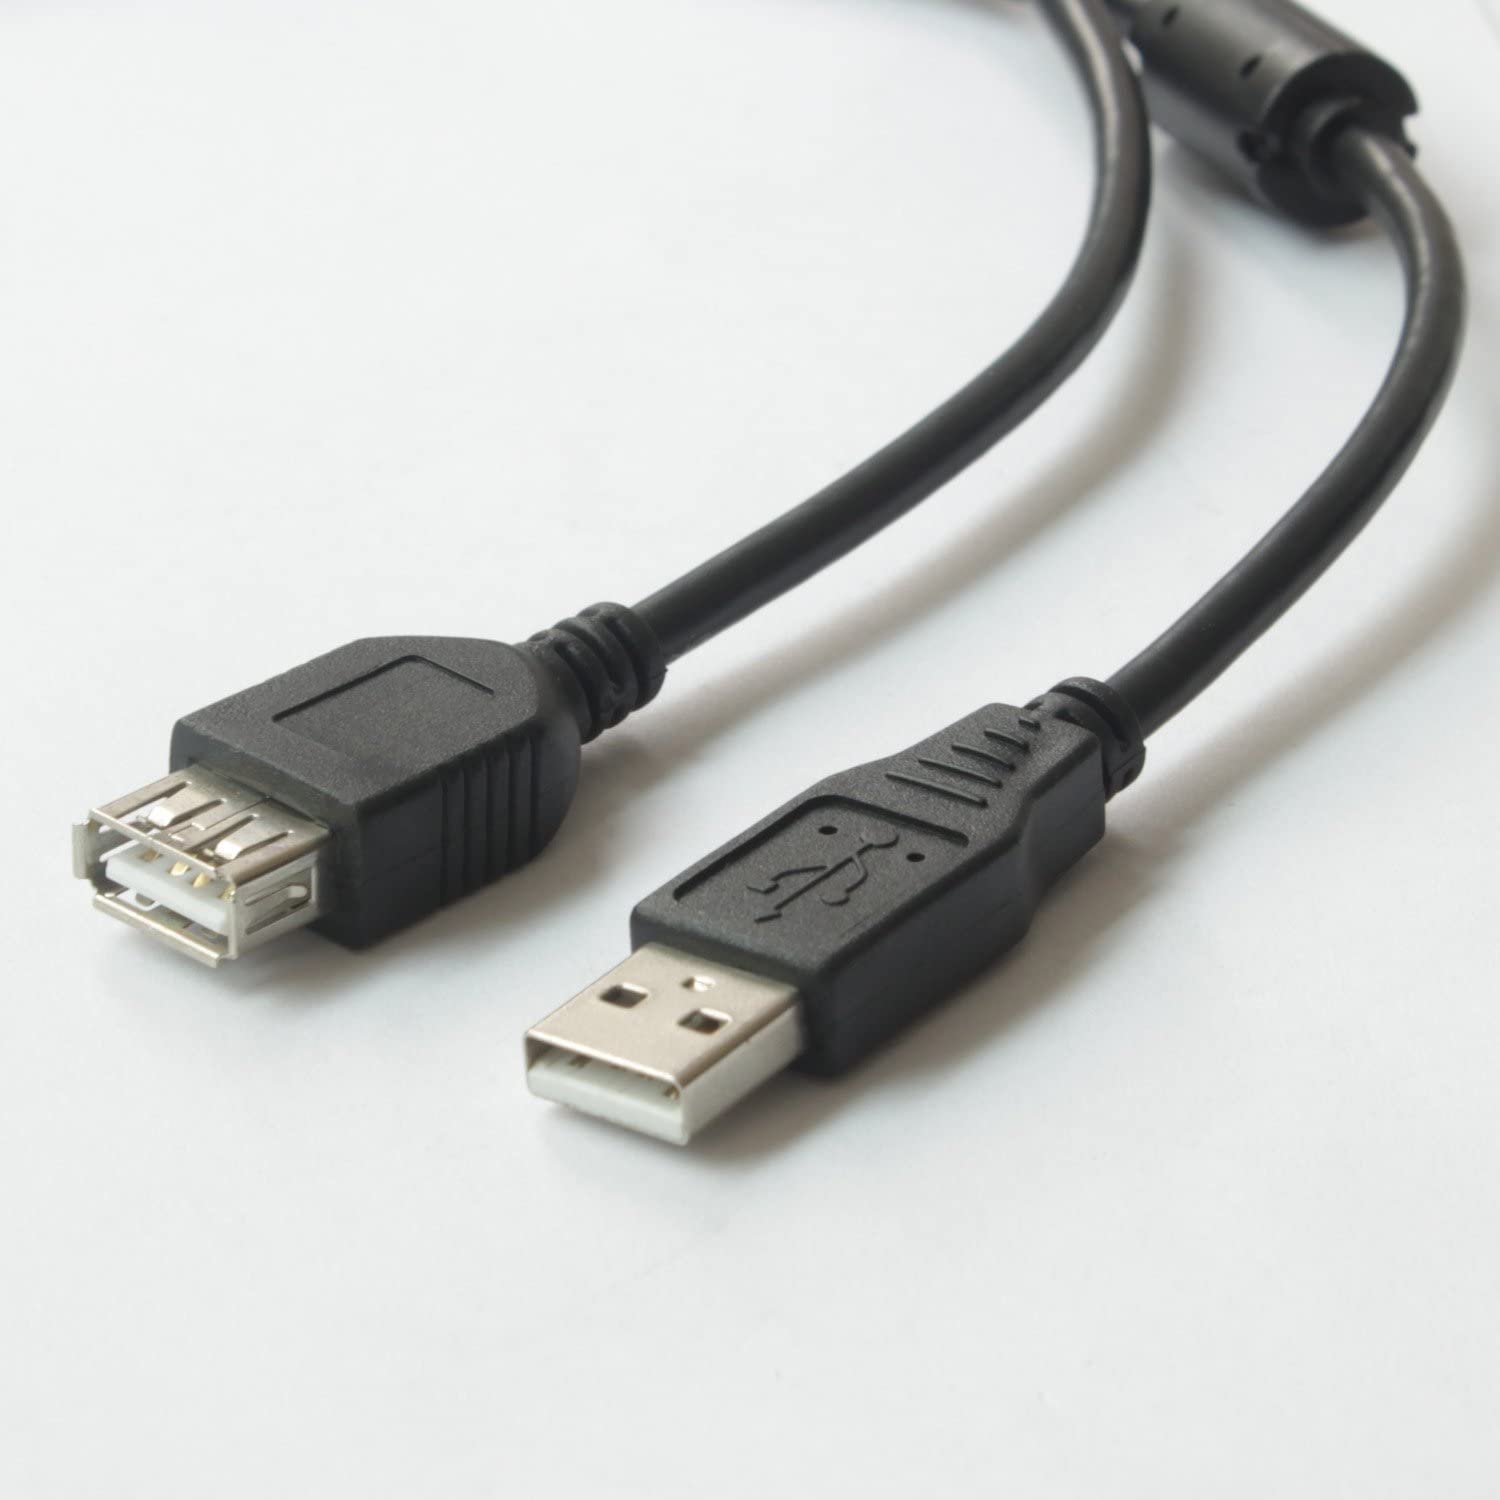 480 Mbps High Speed USB 2.0 Cable Type A Male//Female AMAF Extension Cord 25ft